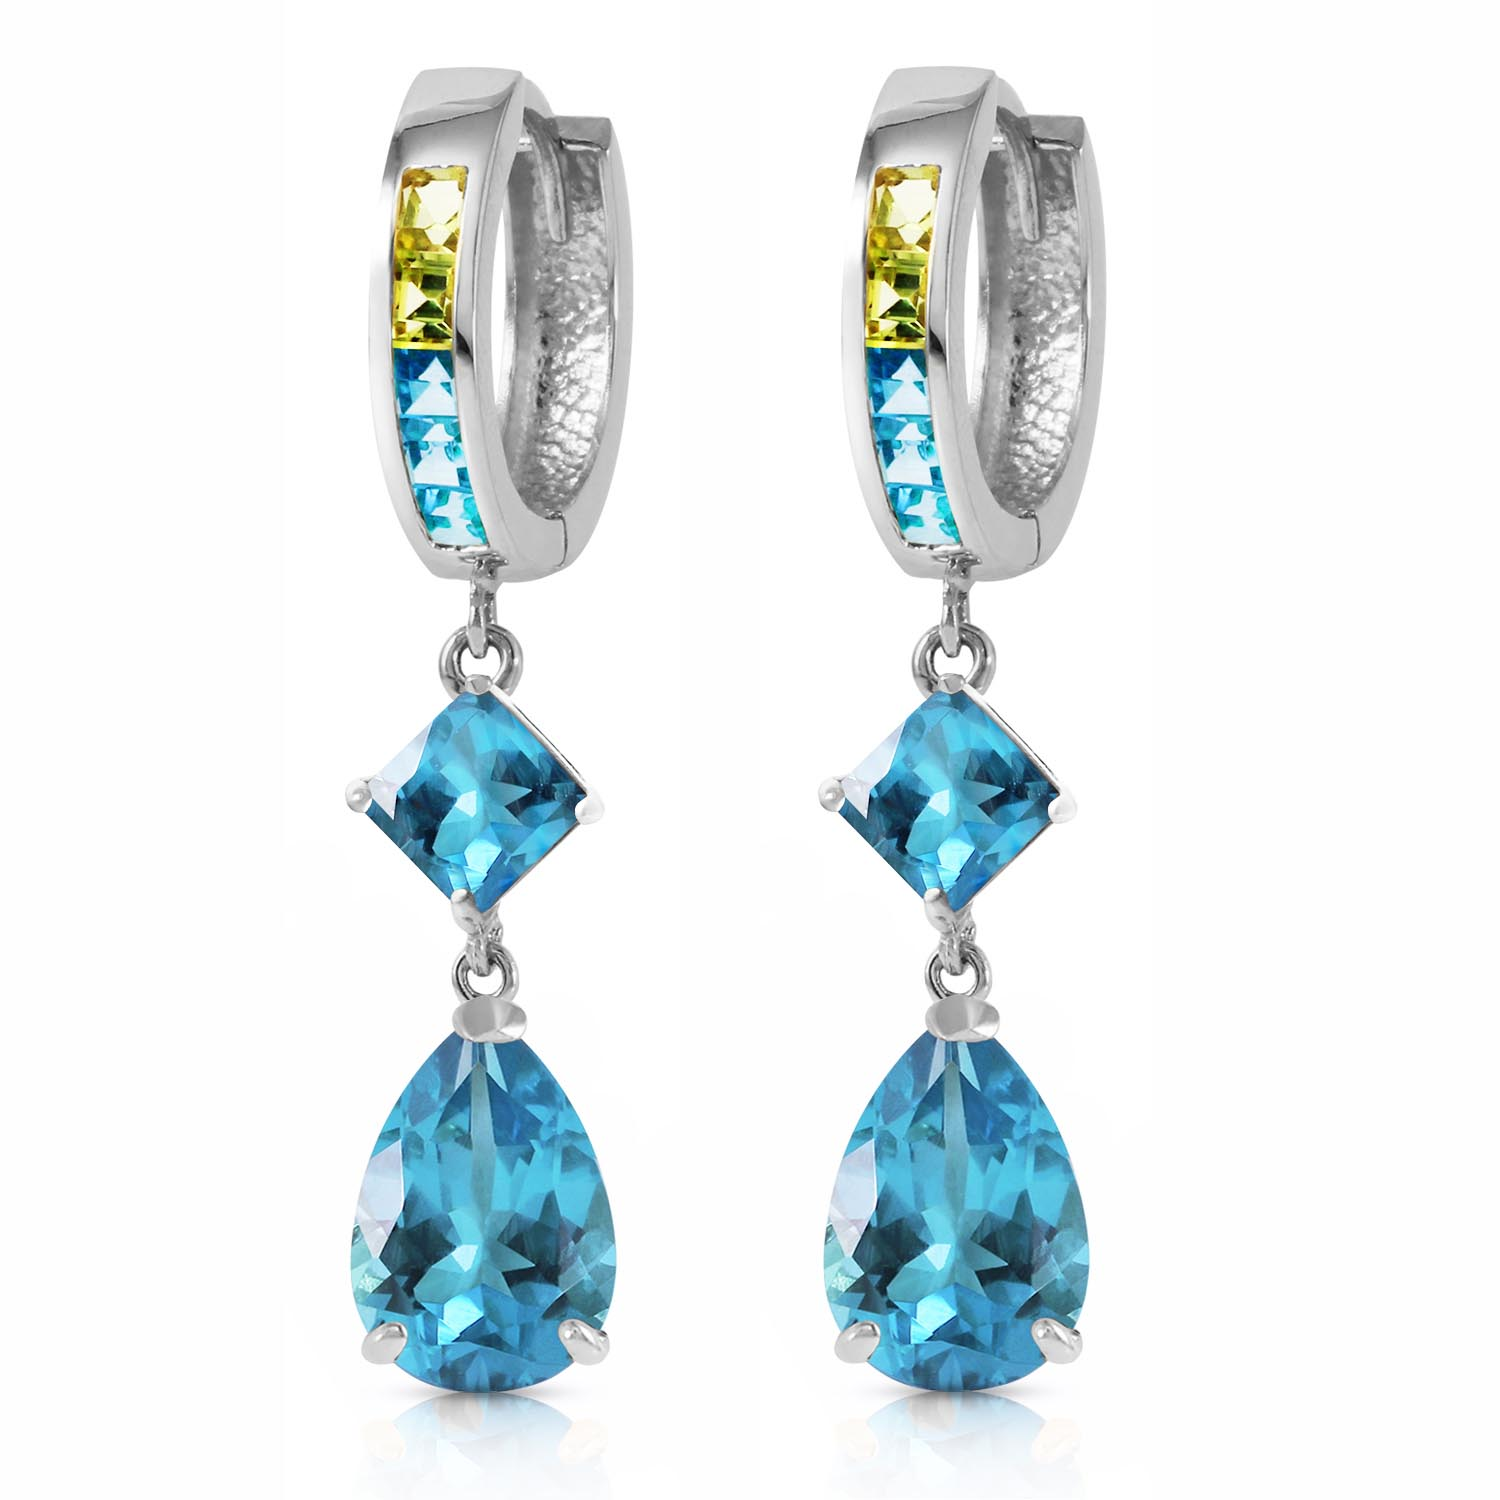 Blue Topaz and Peridot Huggie Earrings 5.37ctw in 9ct White Gold